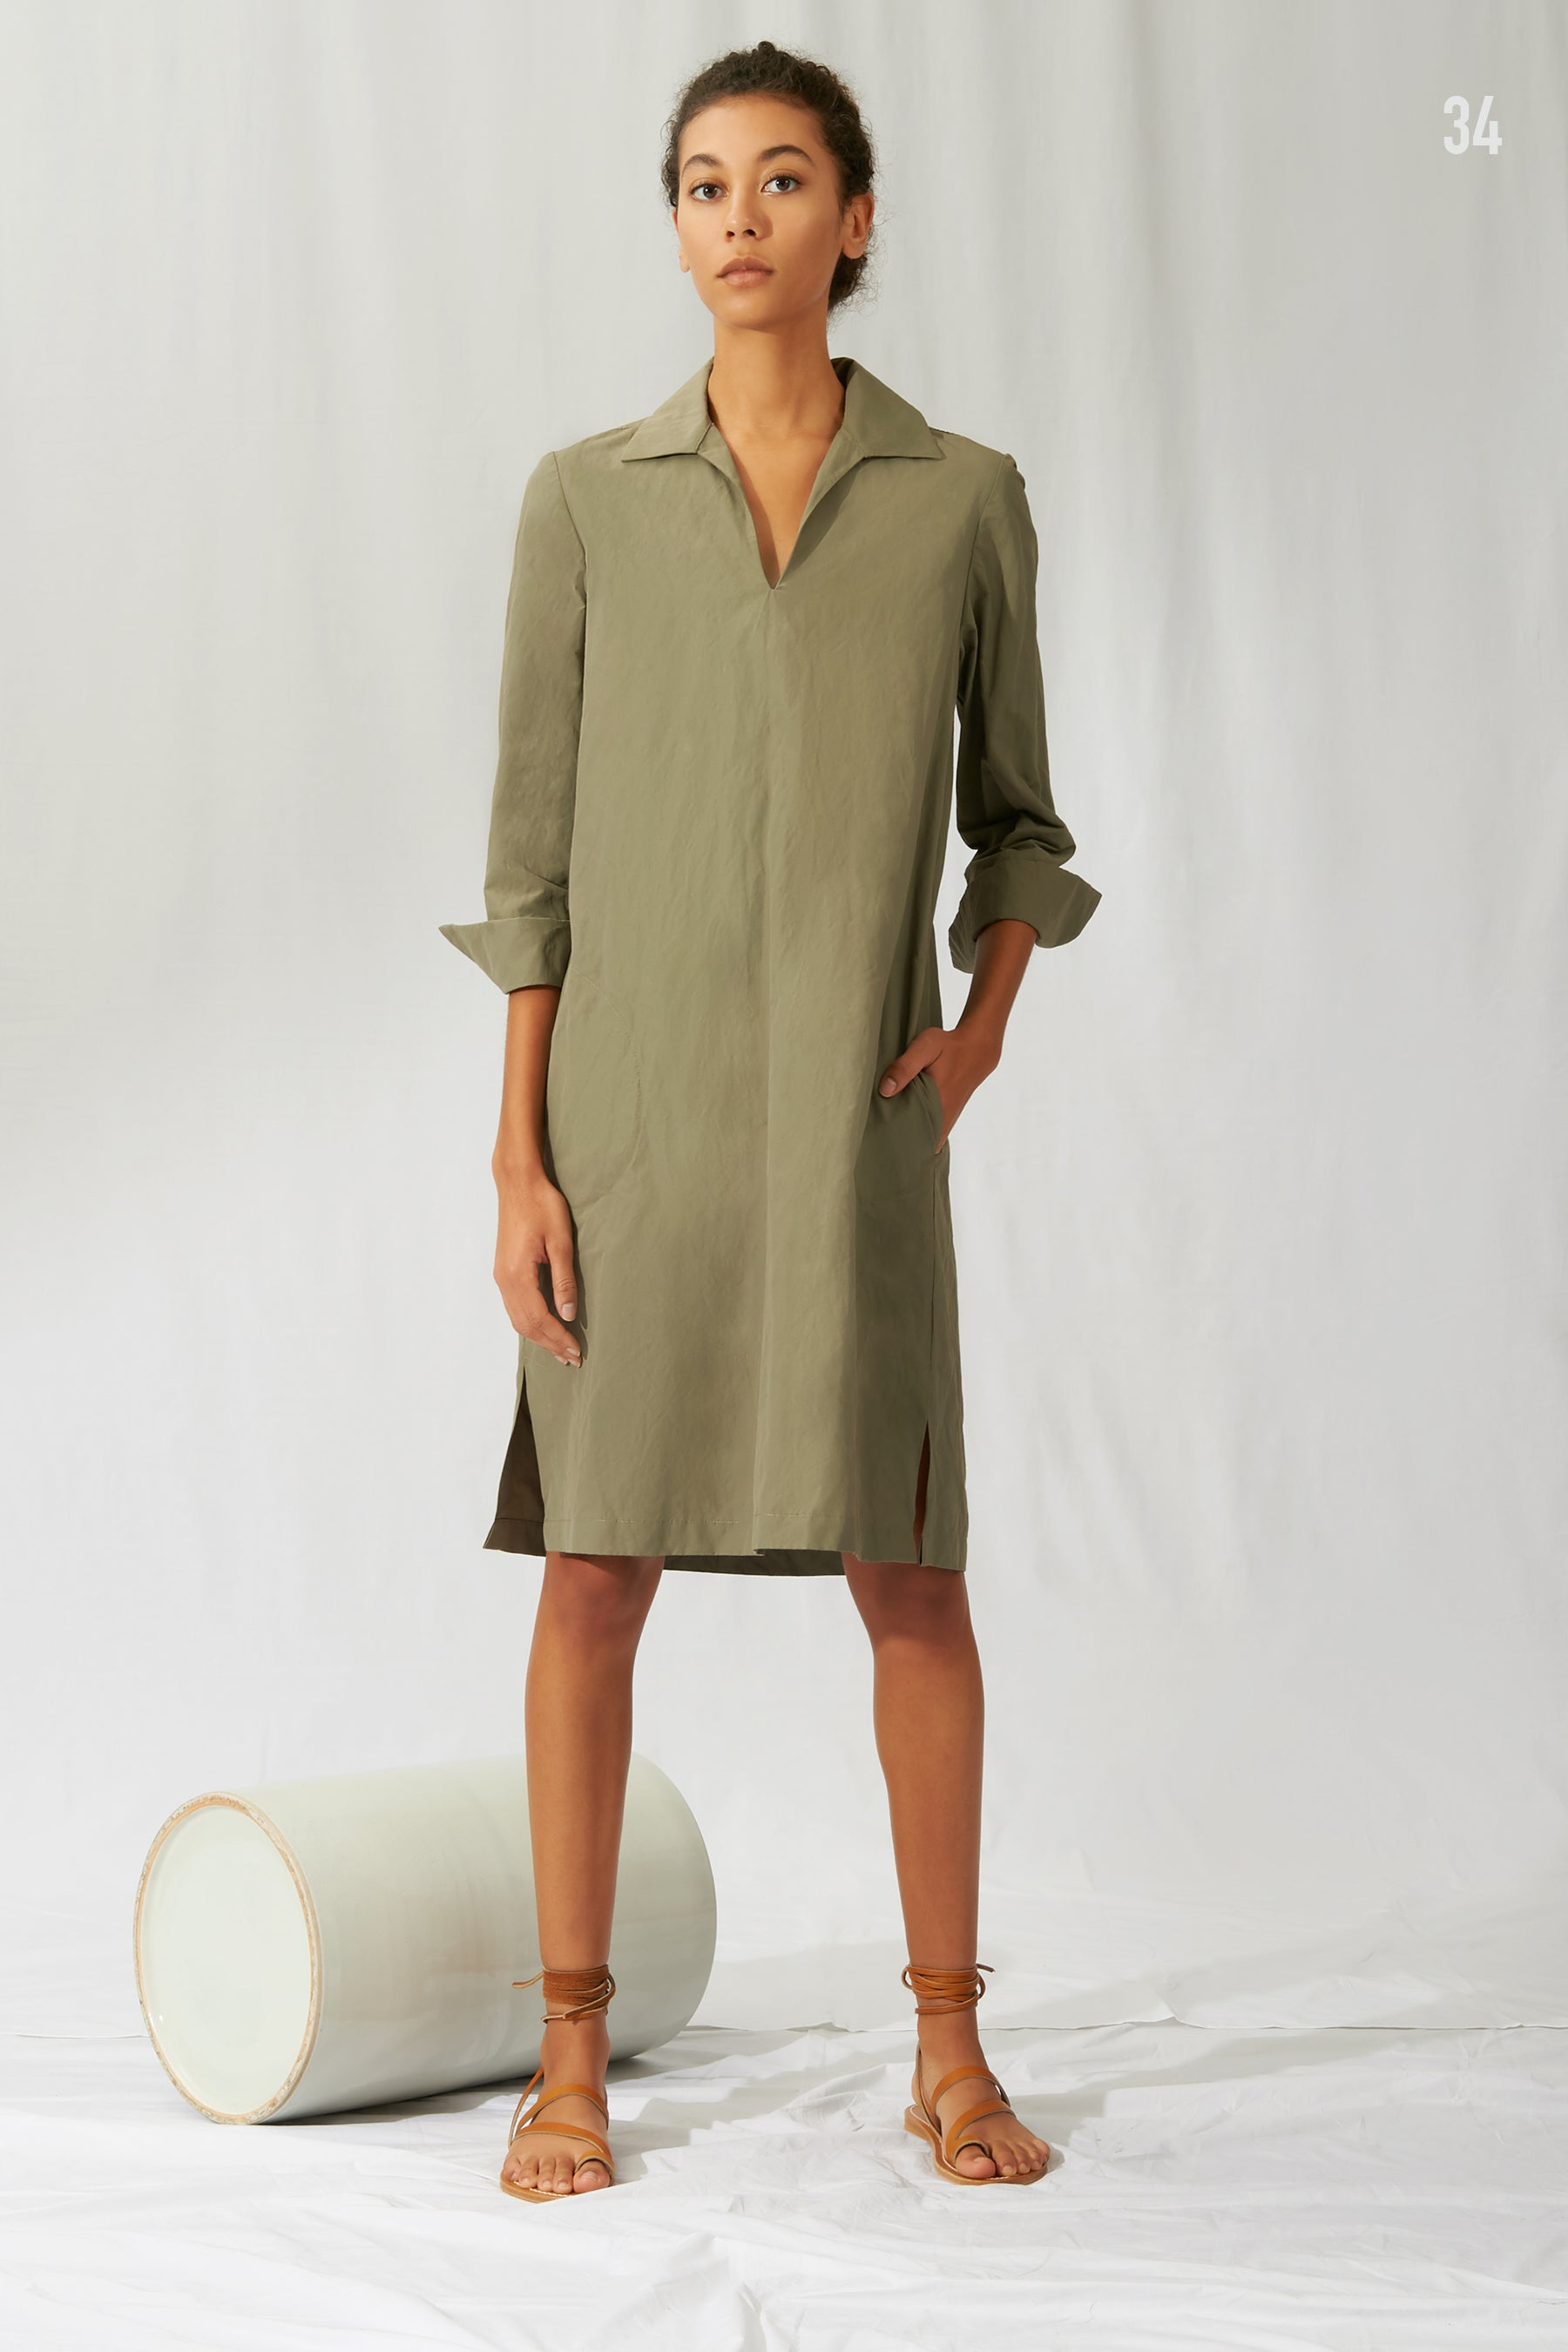 Kal Rieman Spring 2020 Lookbook Look 34